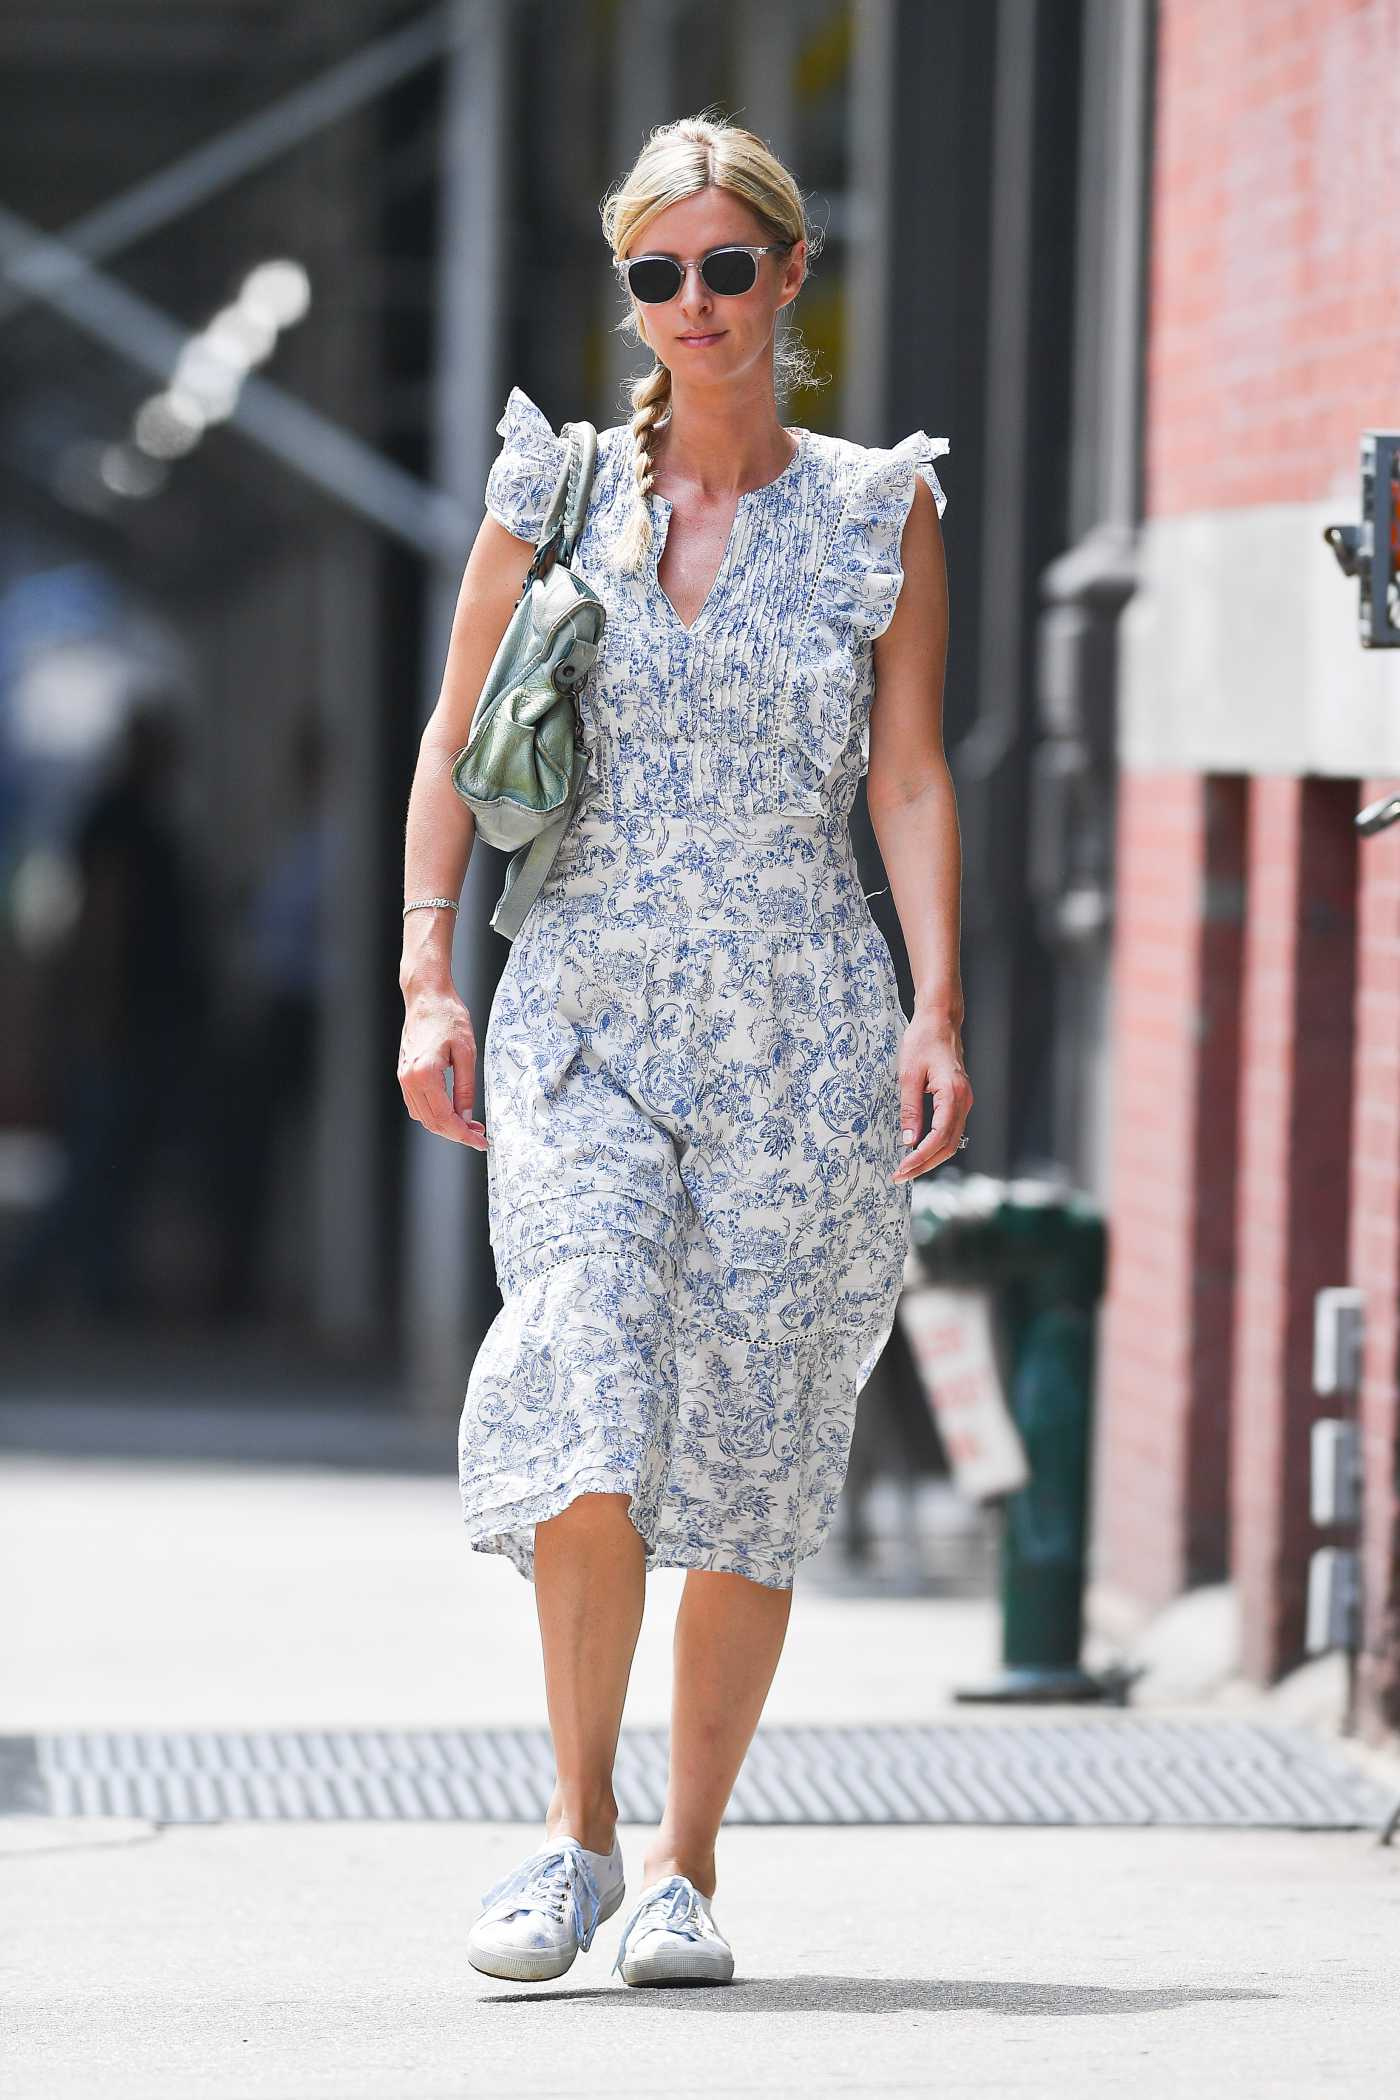 Nicky Hilton in a White Patterned Dress Was Seen Out in New York 07/26/2021